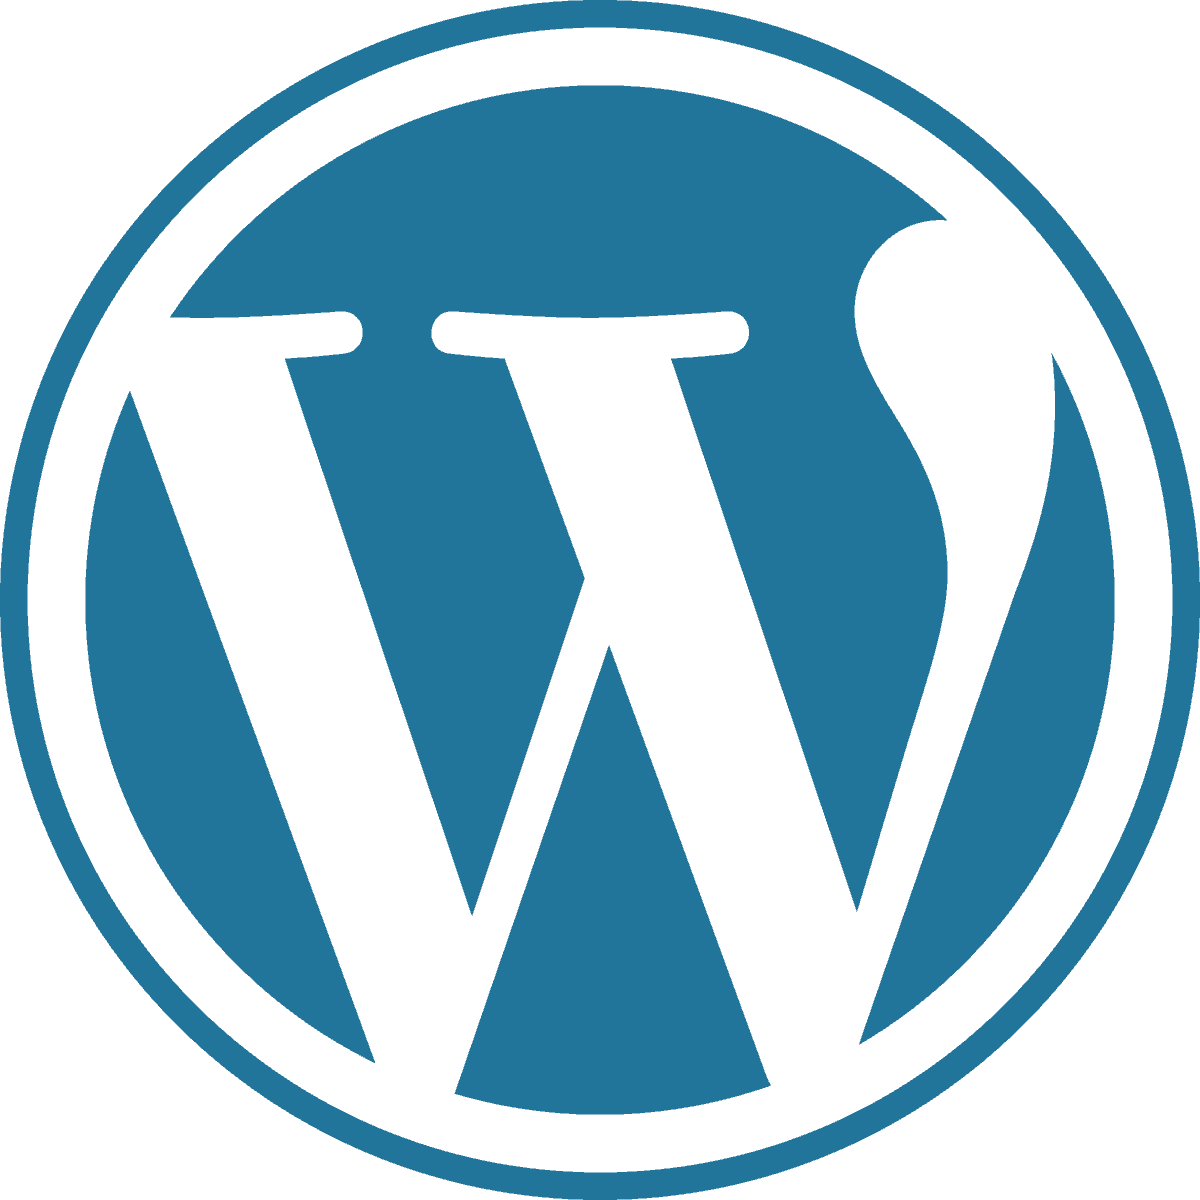 WordPress.com Logó